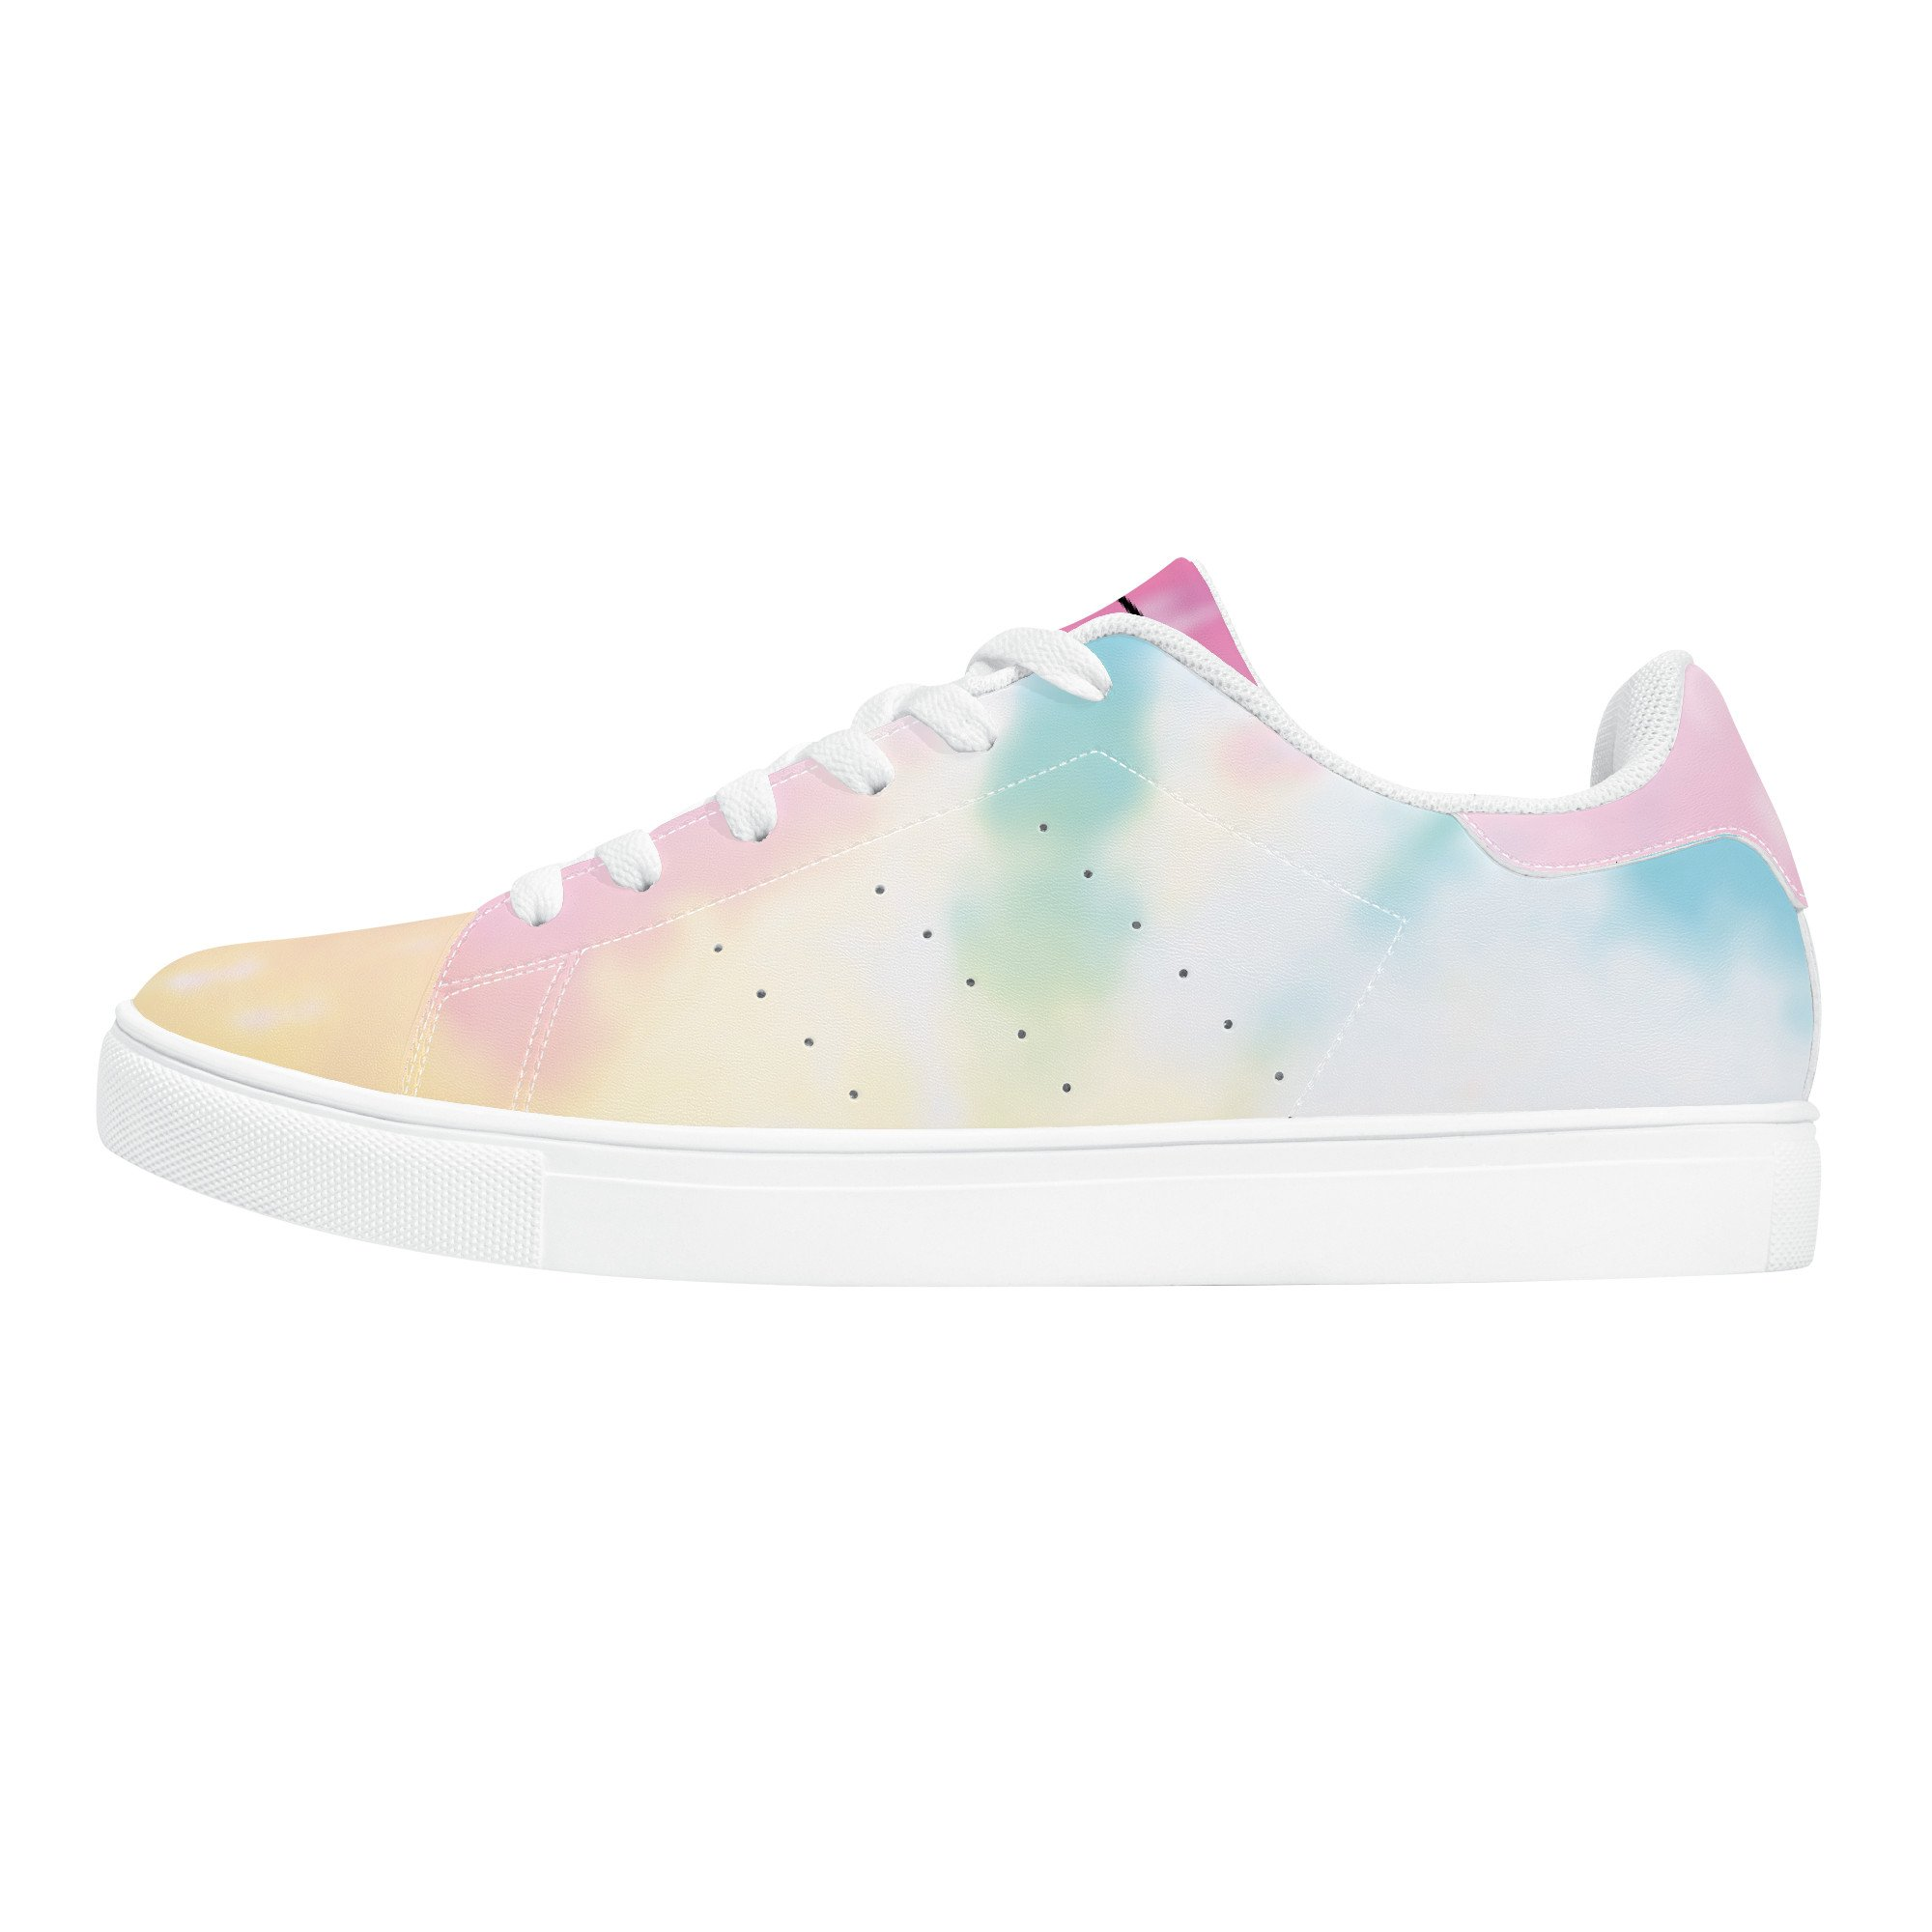 Fred Jo Watercolor Leather Sneakers - Fred jo Clothing